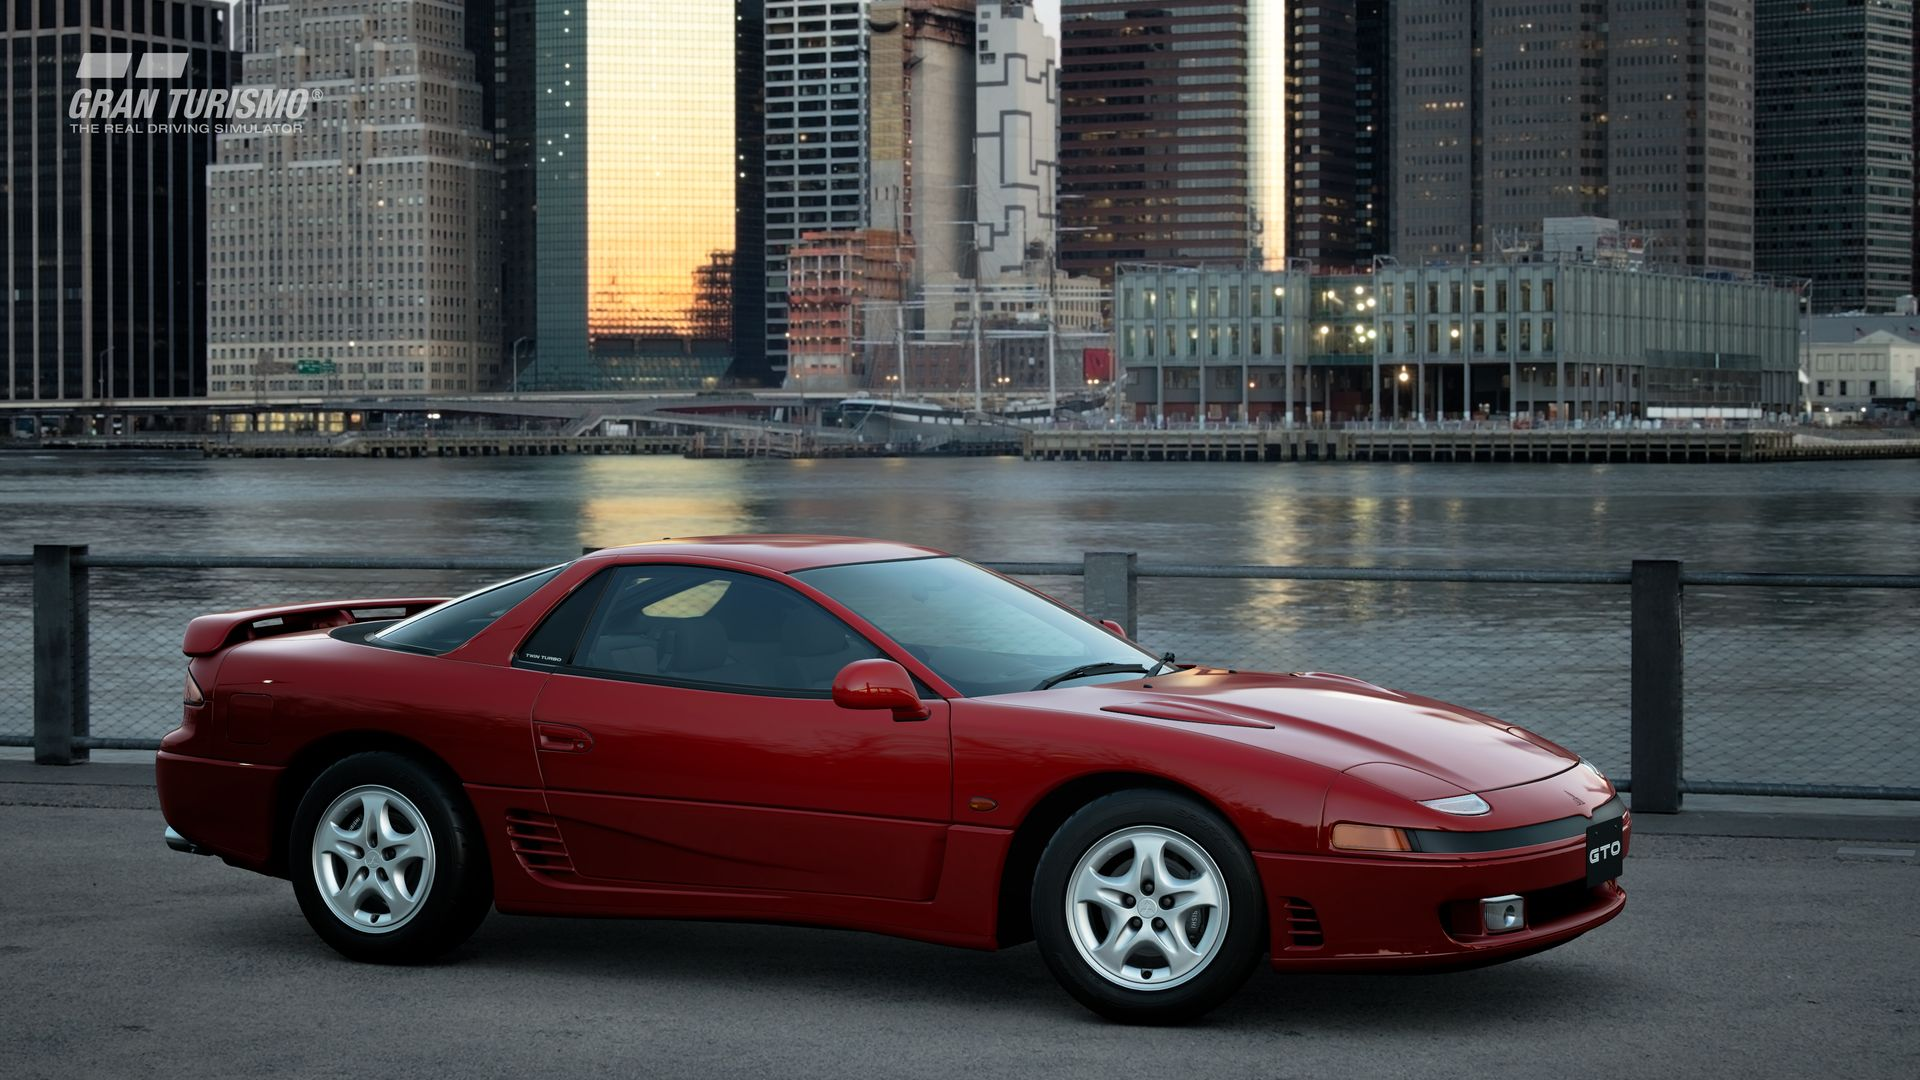 Mitsubishi GTO Twin Turbo '91 (N300)